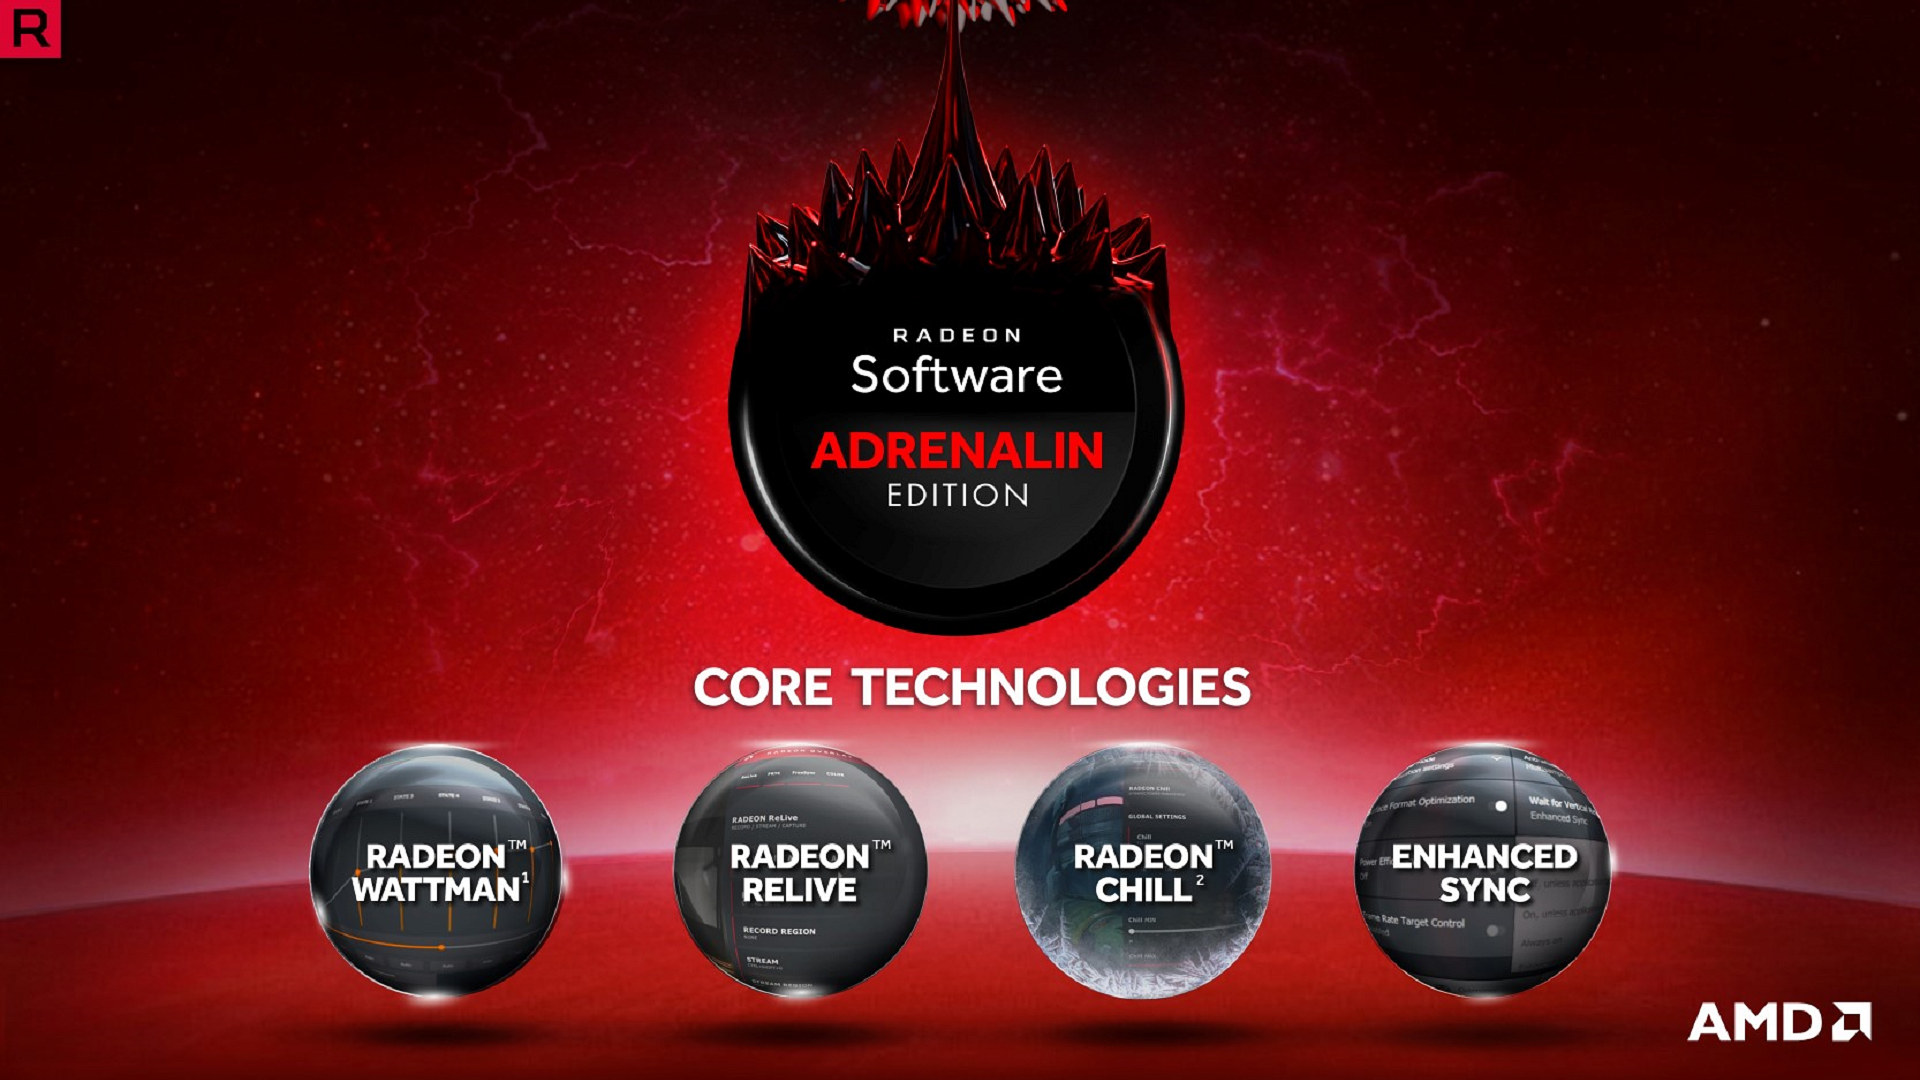 操作體驗有感進化,AMD Radeon Software Adrenalin Edition 登場